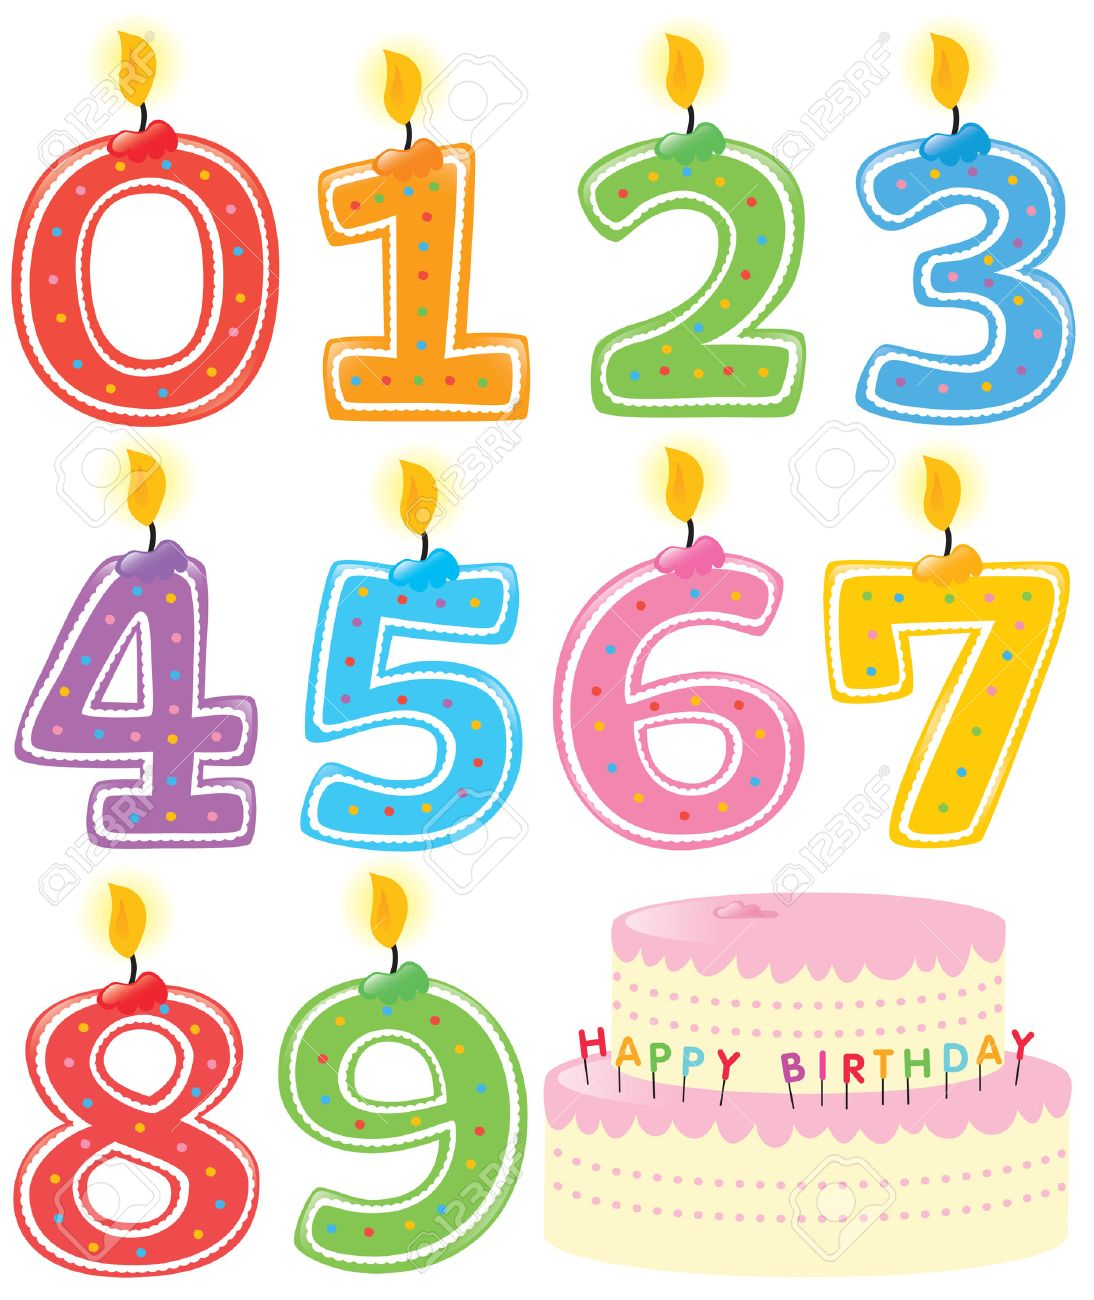 Numbered Birthday Candles and Cake Stock Vector - 5529019